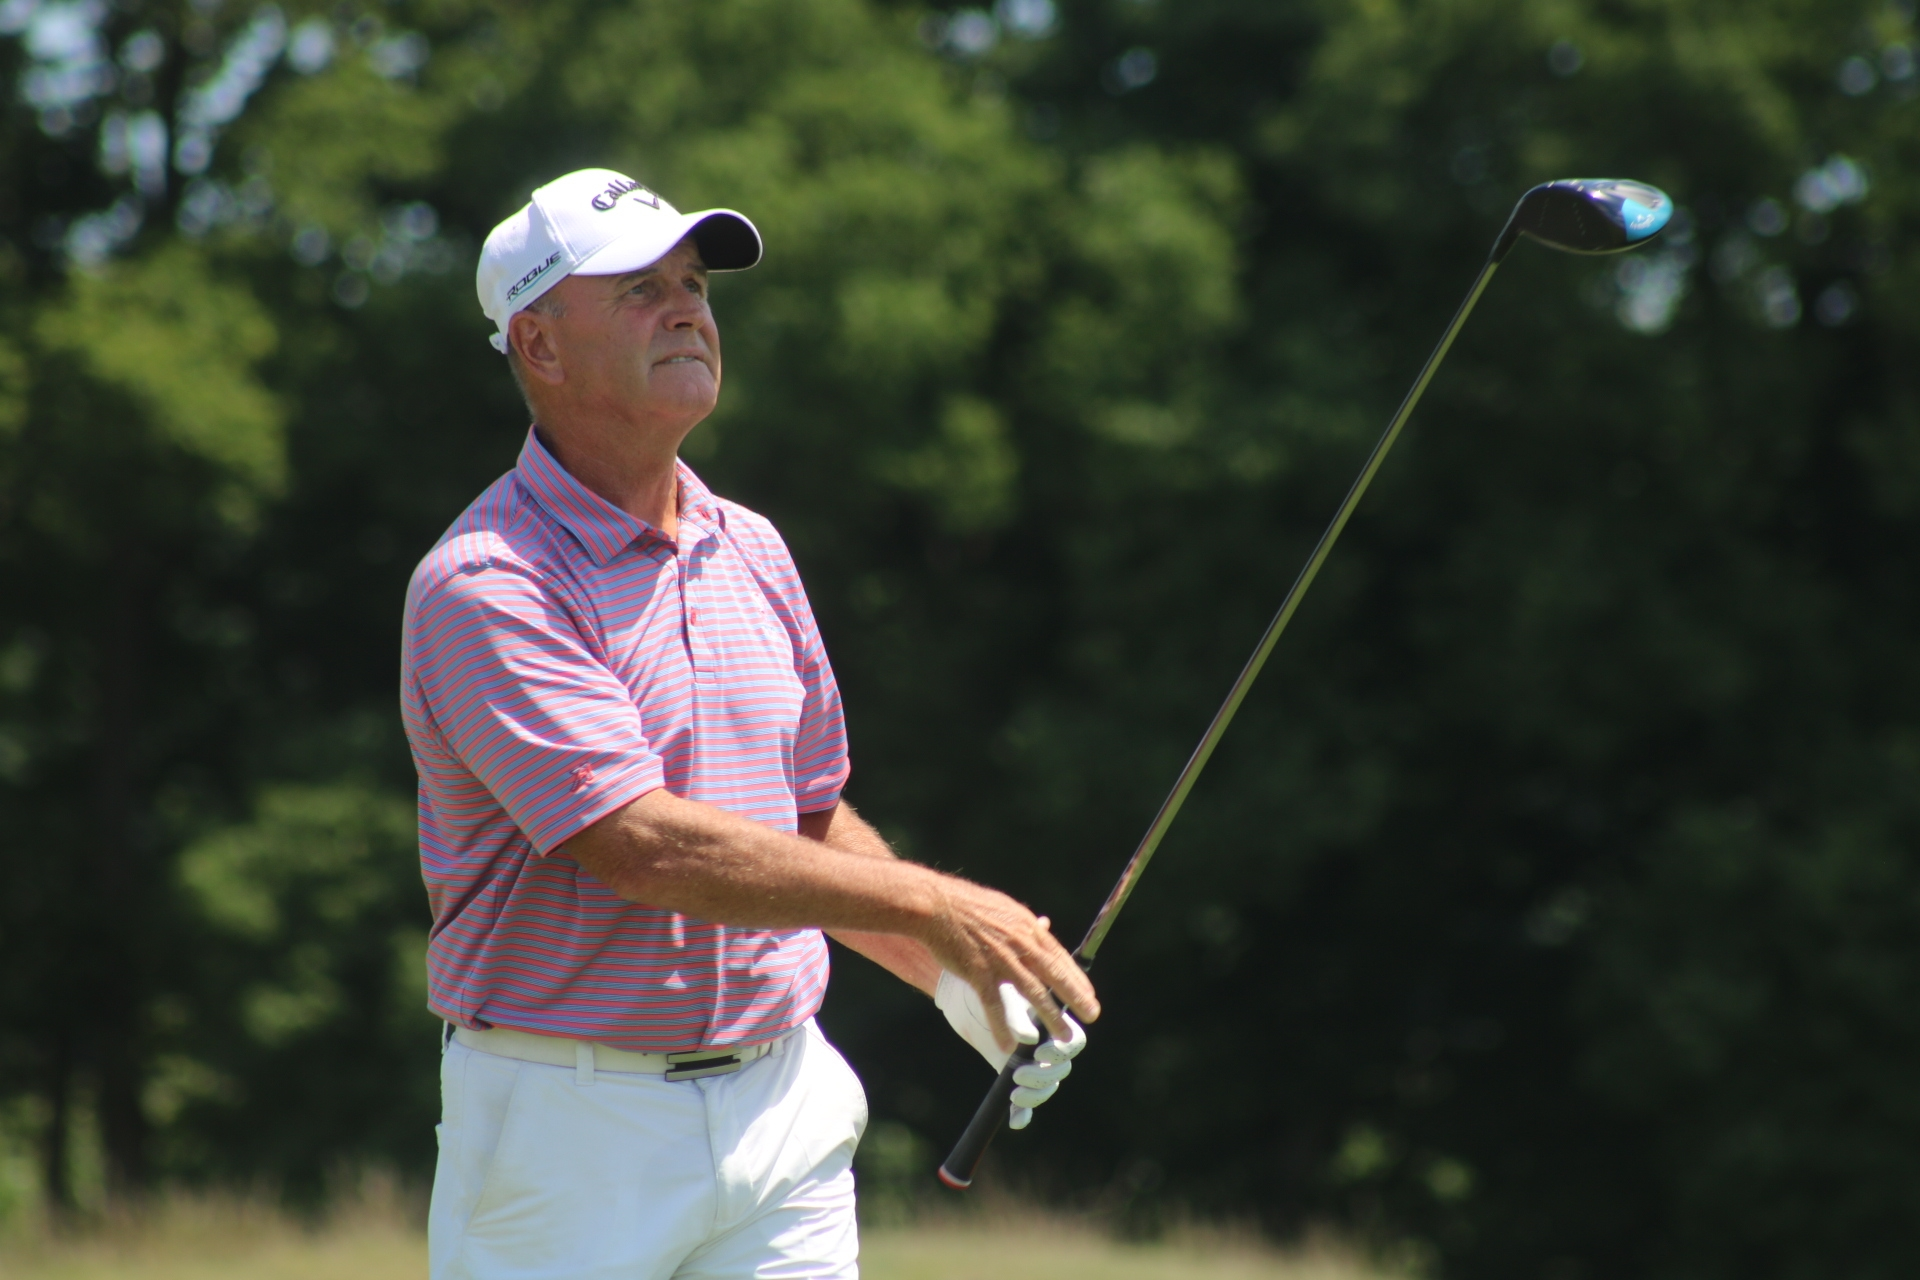 Terry Werner Wins Second Consecutive Senior Match Play Championship